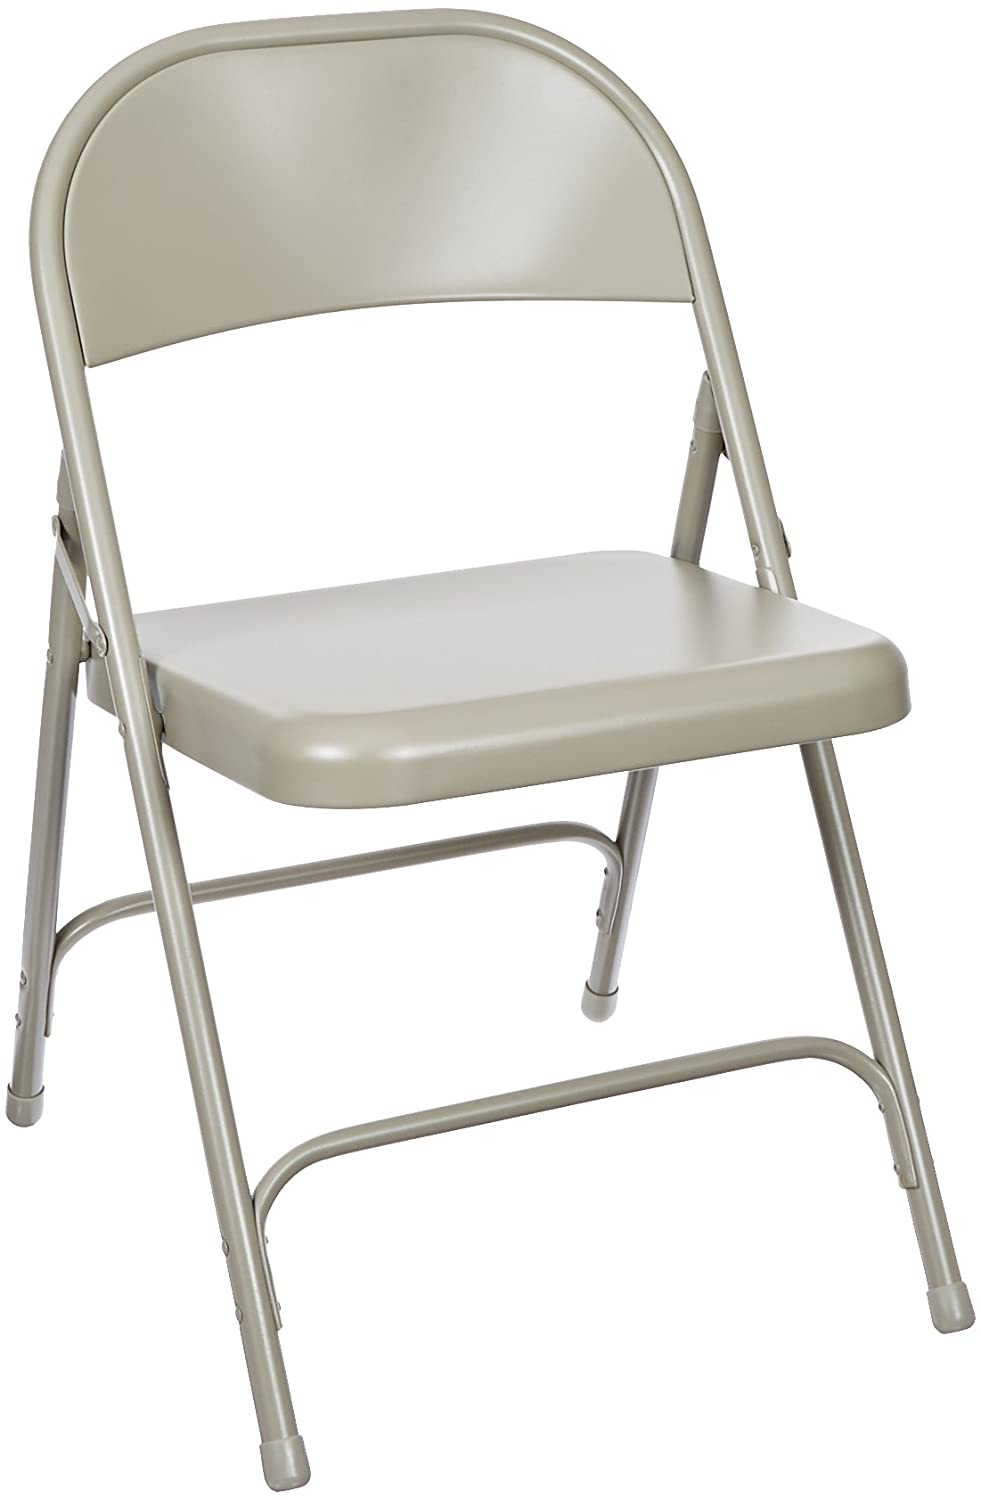 12 people when using folding chairs 12 people should fit comfortably - Amazon Com National Public Seating 50 Series All Steel Standard Folding Chair With Double Brace 480 Lbs Capacity Beige Carton Of 4 Industrial